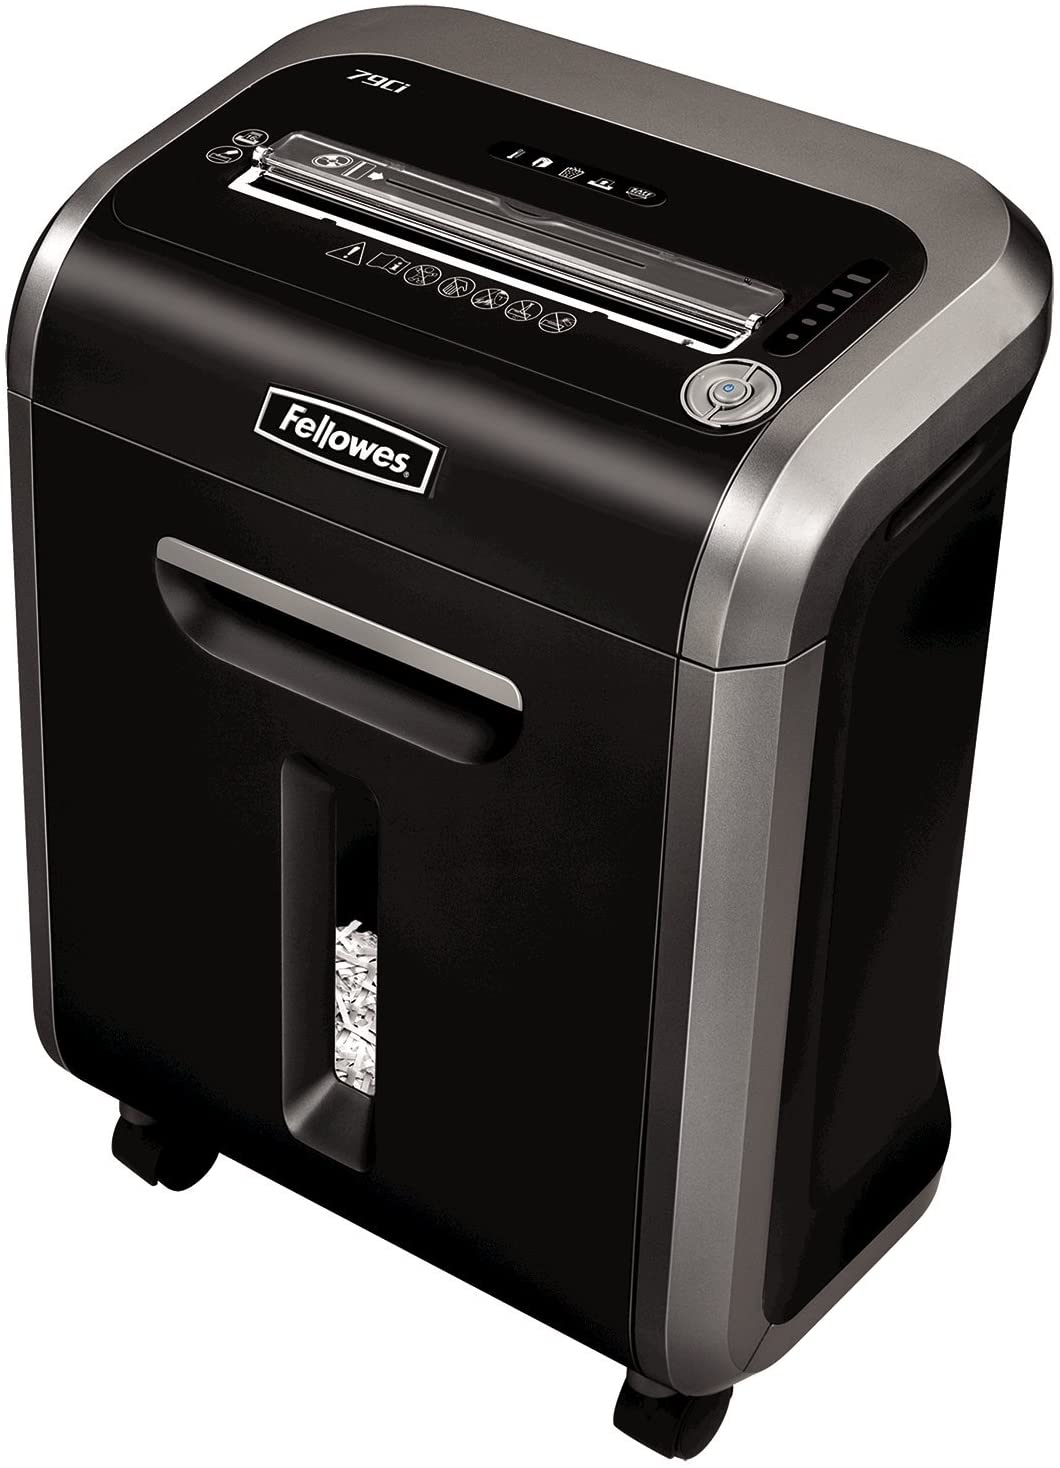 Fellowes Powershred 79Ci 16 Sheet Cross Cut Paper Shredder for the Small or Home Office with 100 Percent Jam Proof, SafeSense and Silent Shred uk reviews